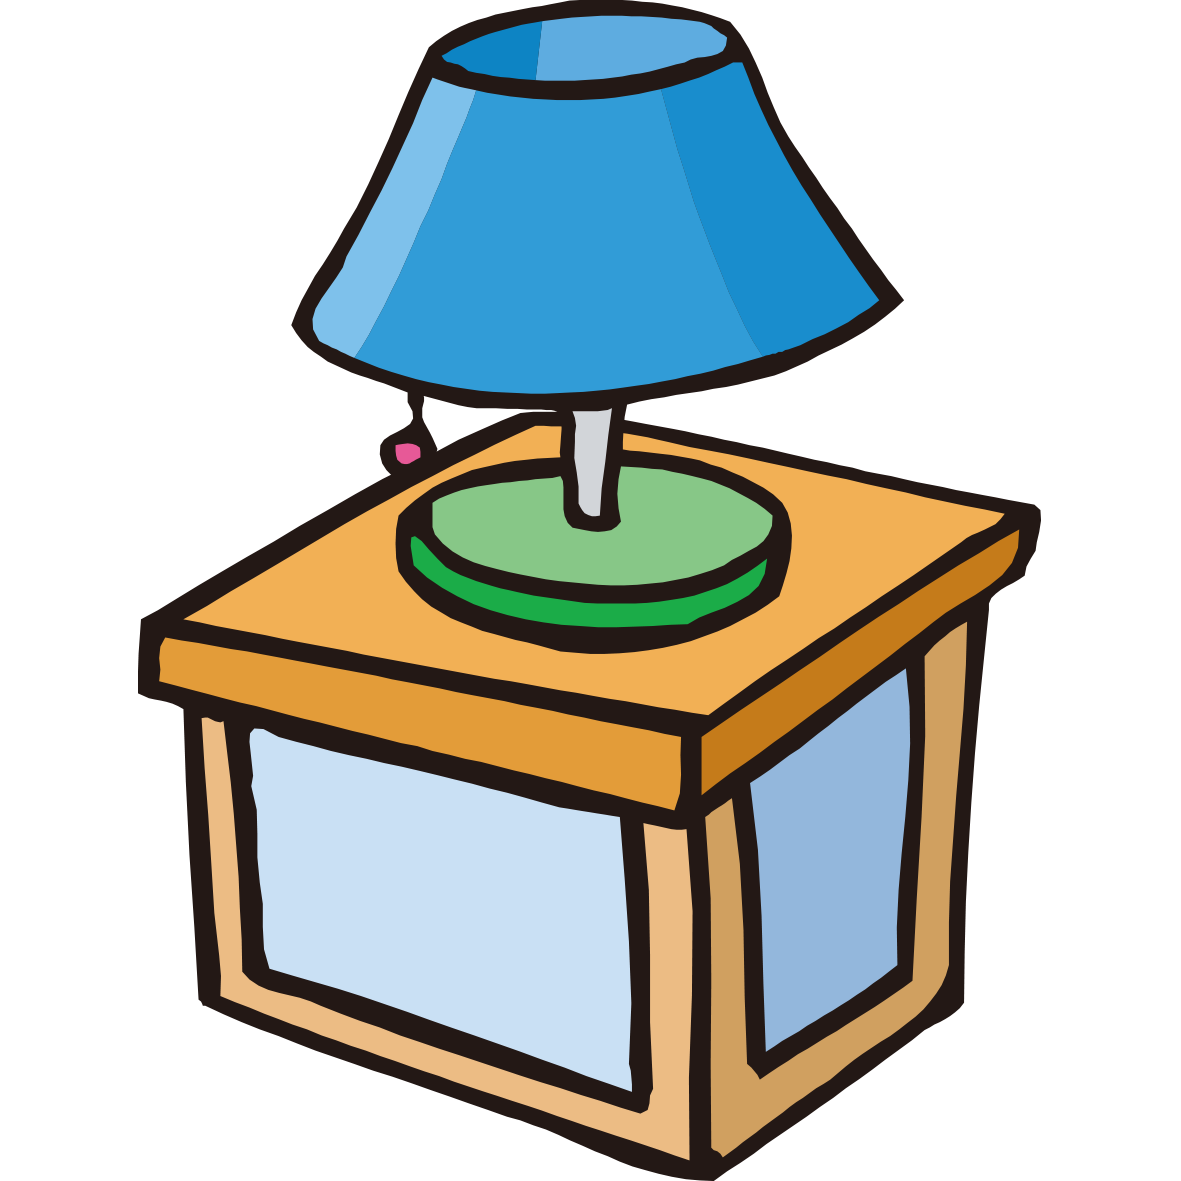 Bedside tables light fixture. Donuts clipart round object